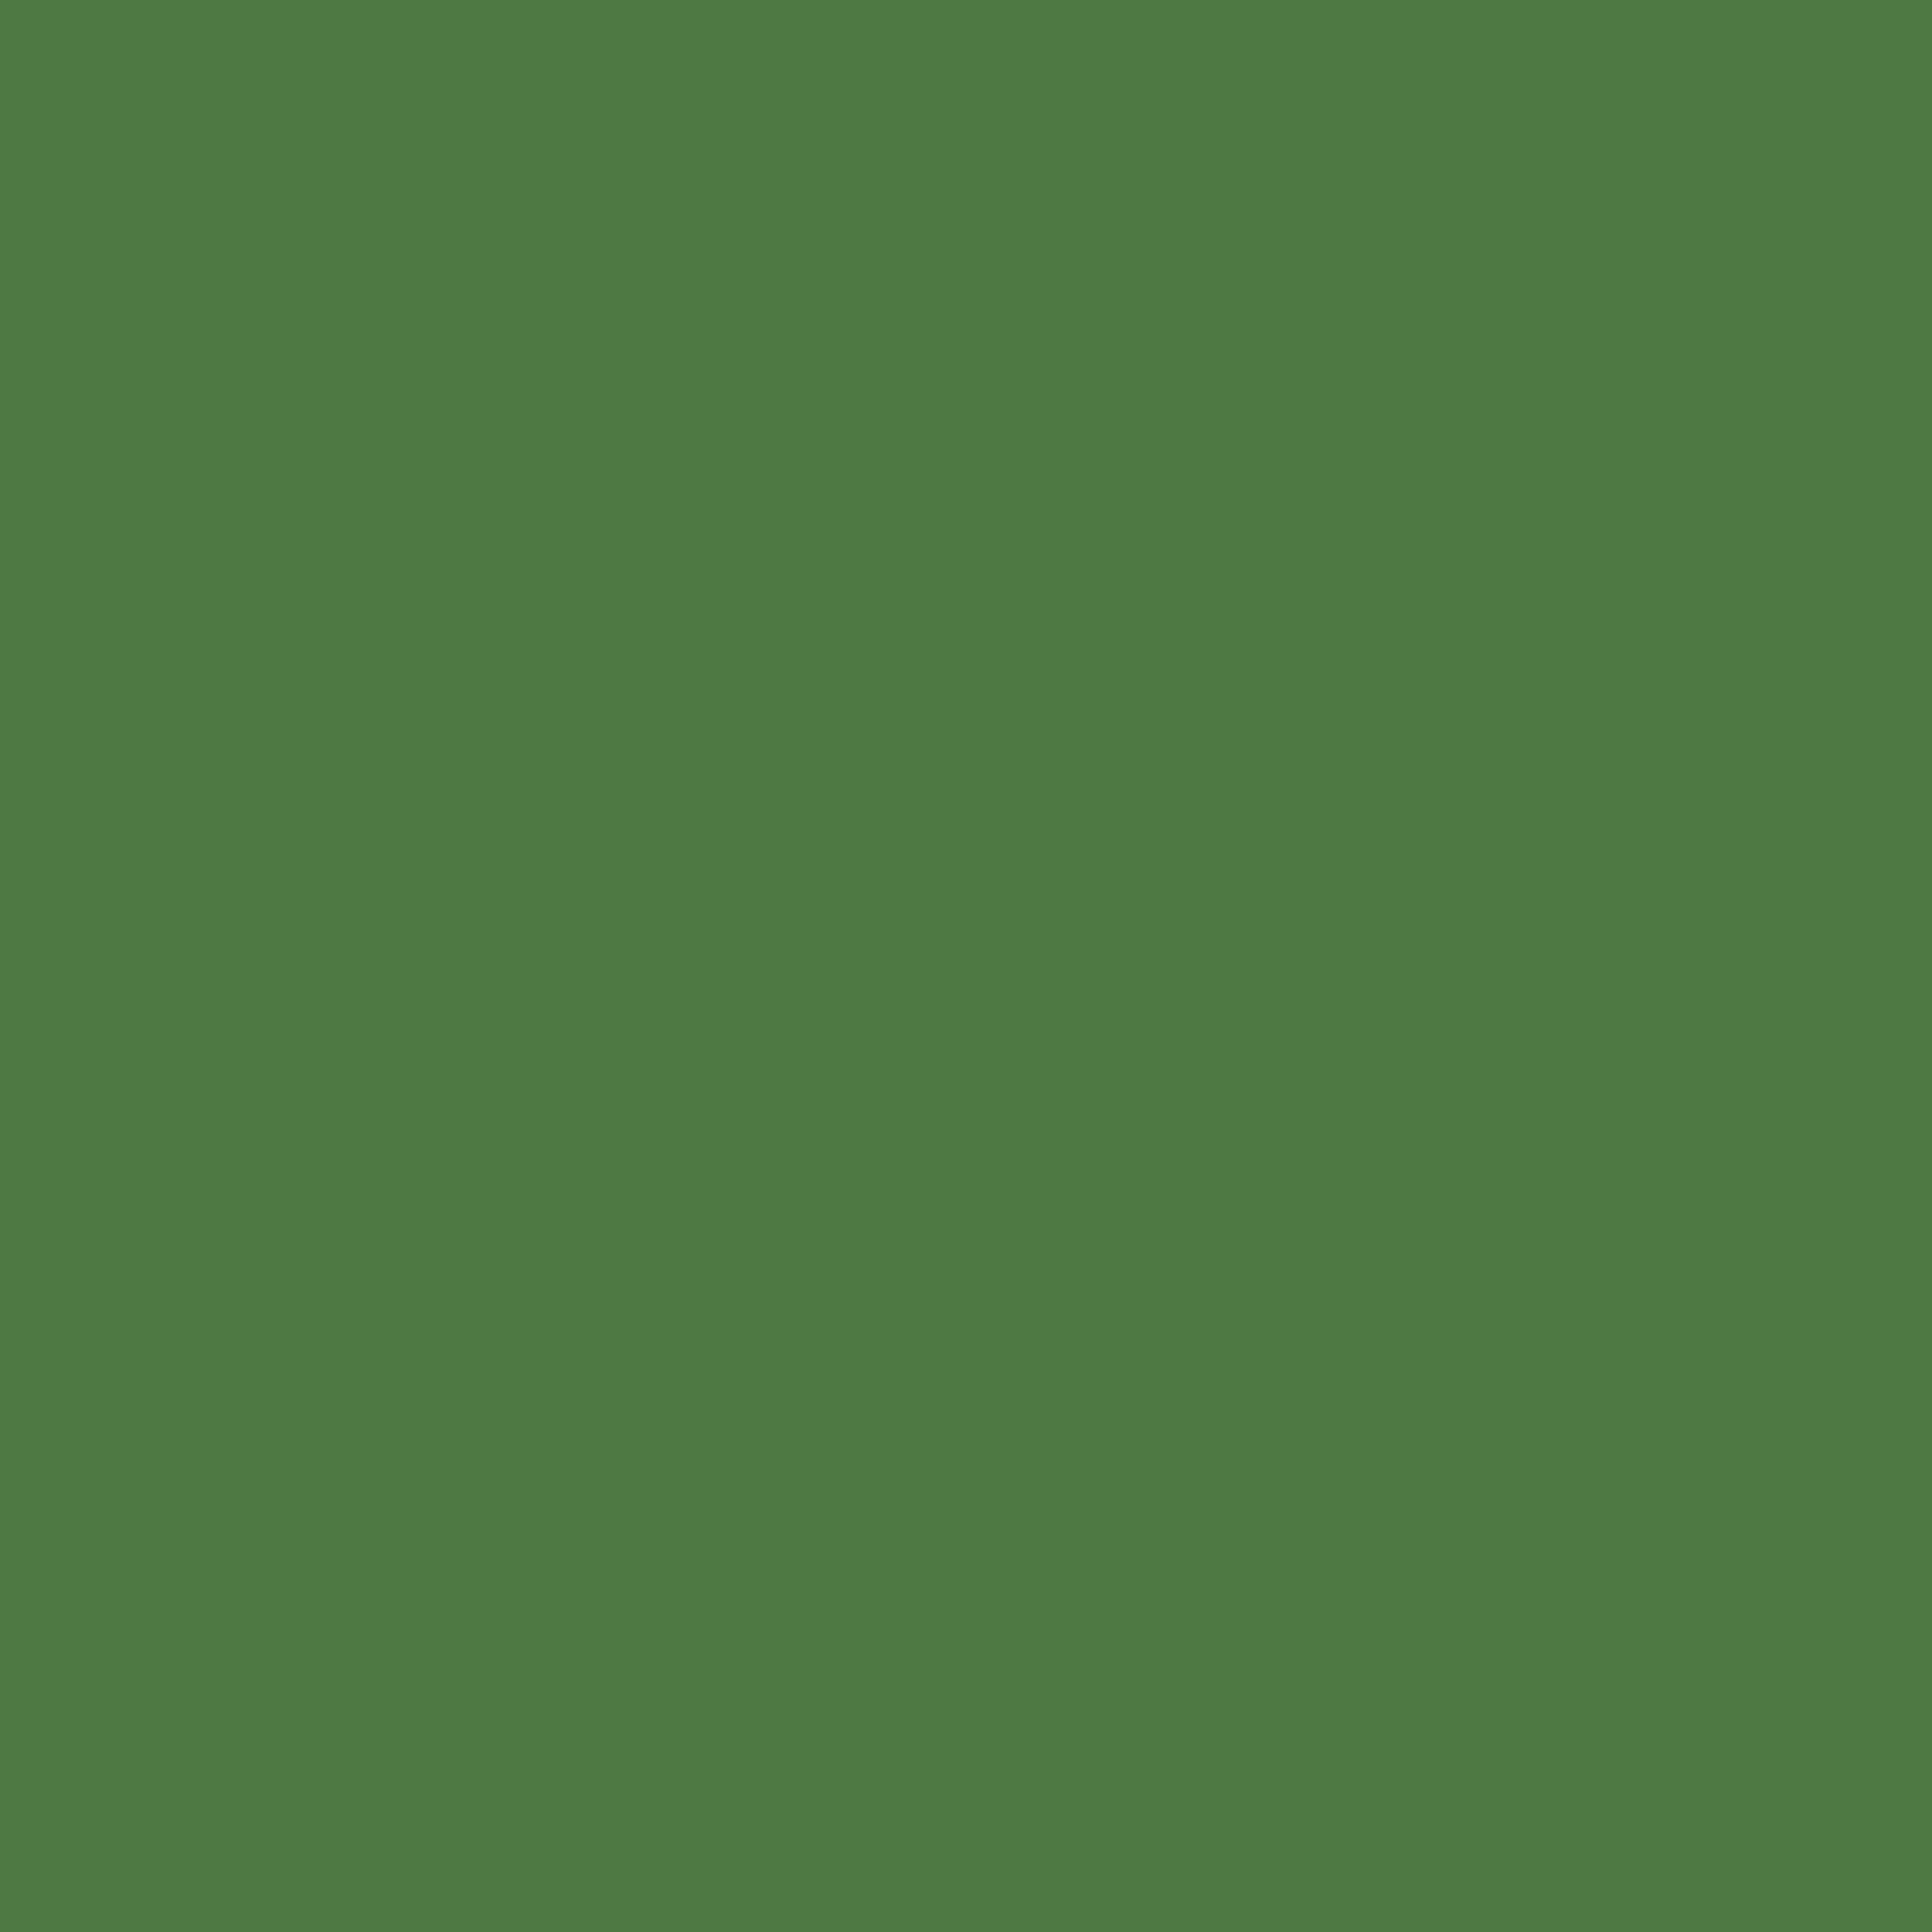 2048x2048 Fern Green Solid Color Background